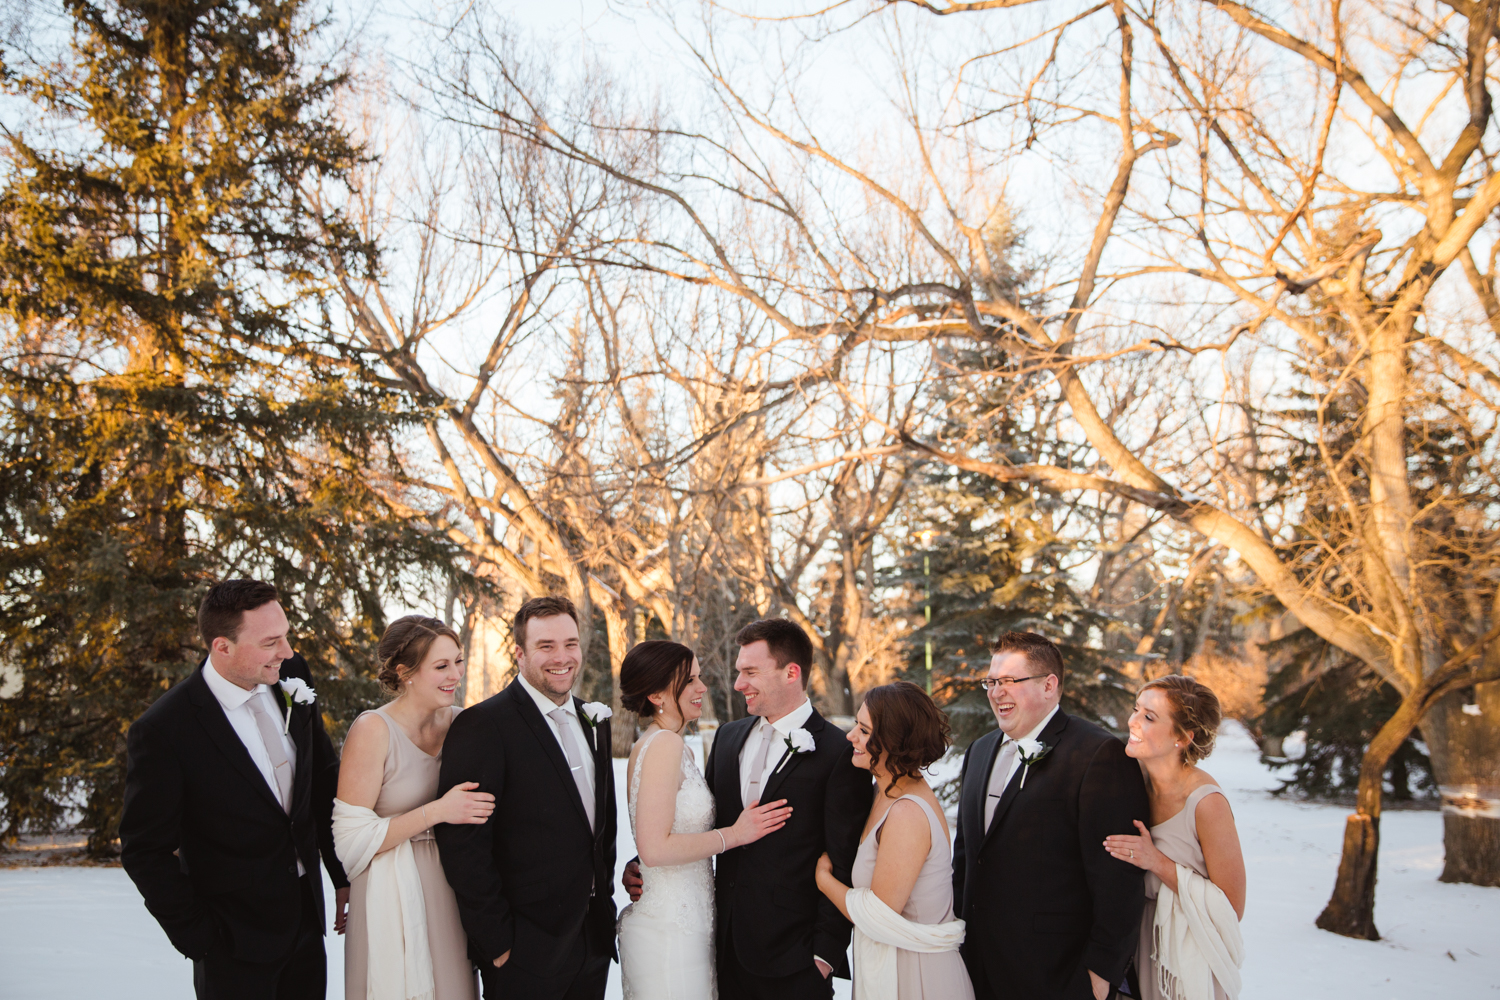 Rachel and Brennan's Moose Jaw Winter Wedding - February 10View Blog